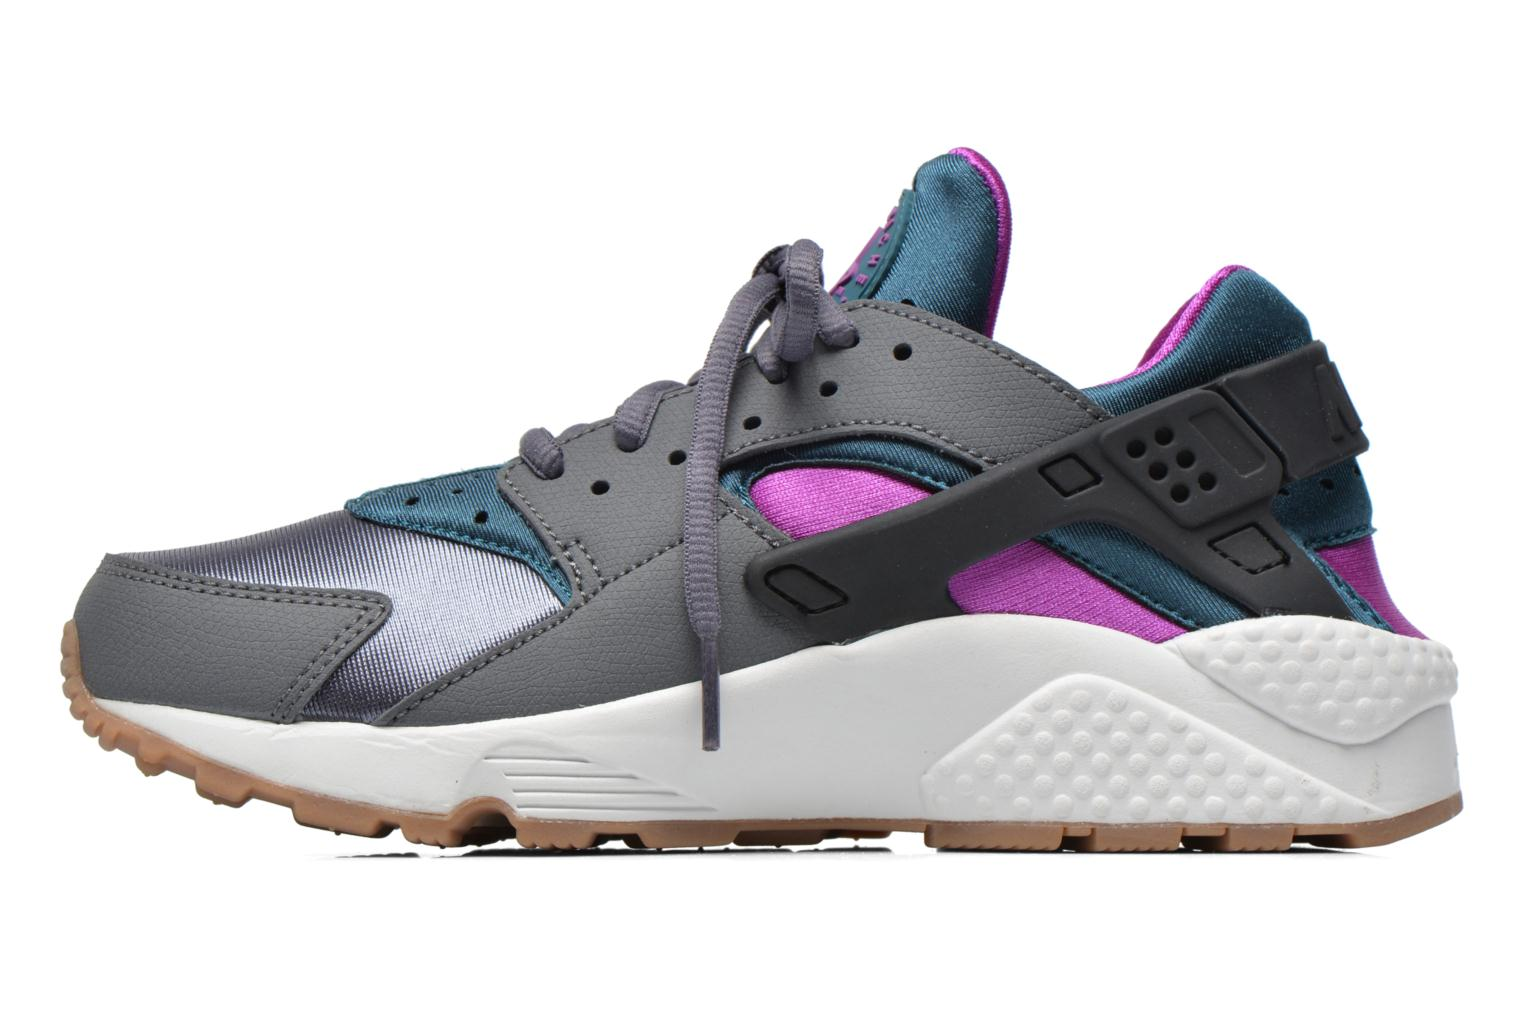 Wmns Air Huarache Run Dark Grey/Teal